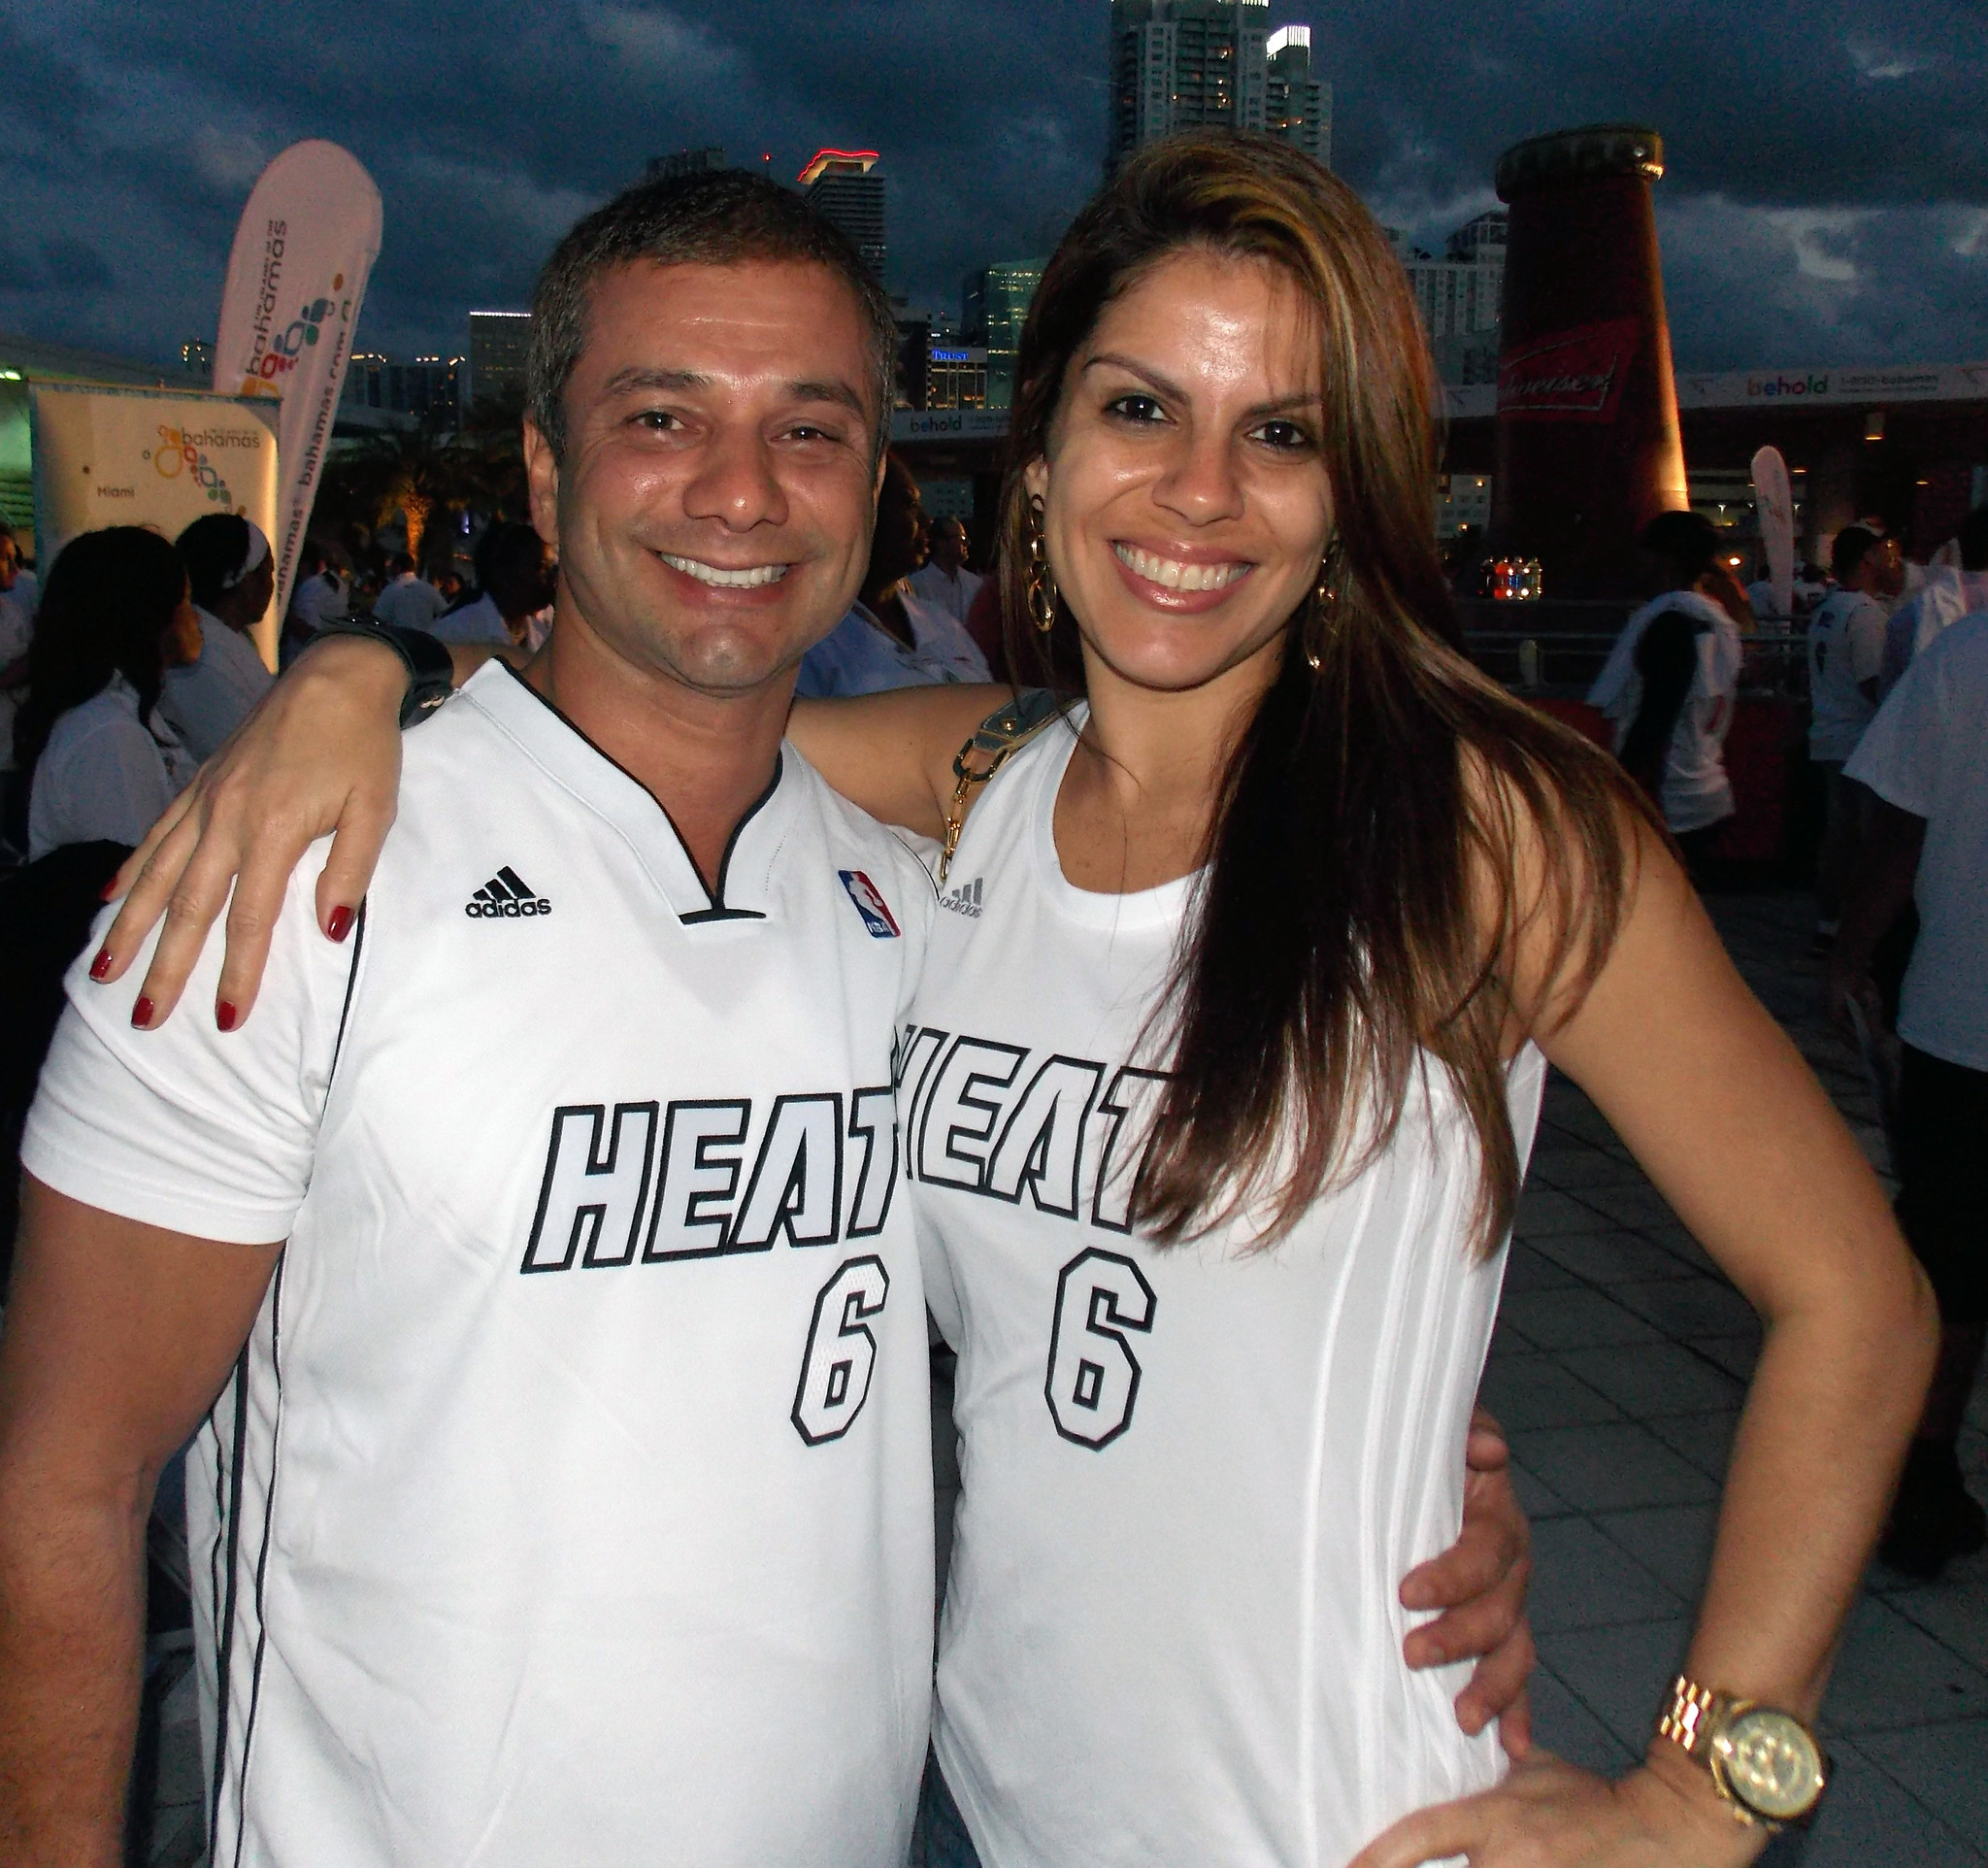 White Hot Heat fans - Heat Victory